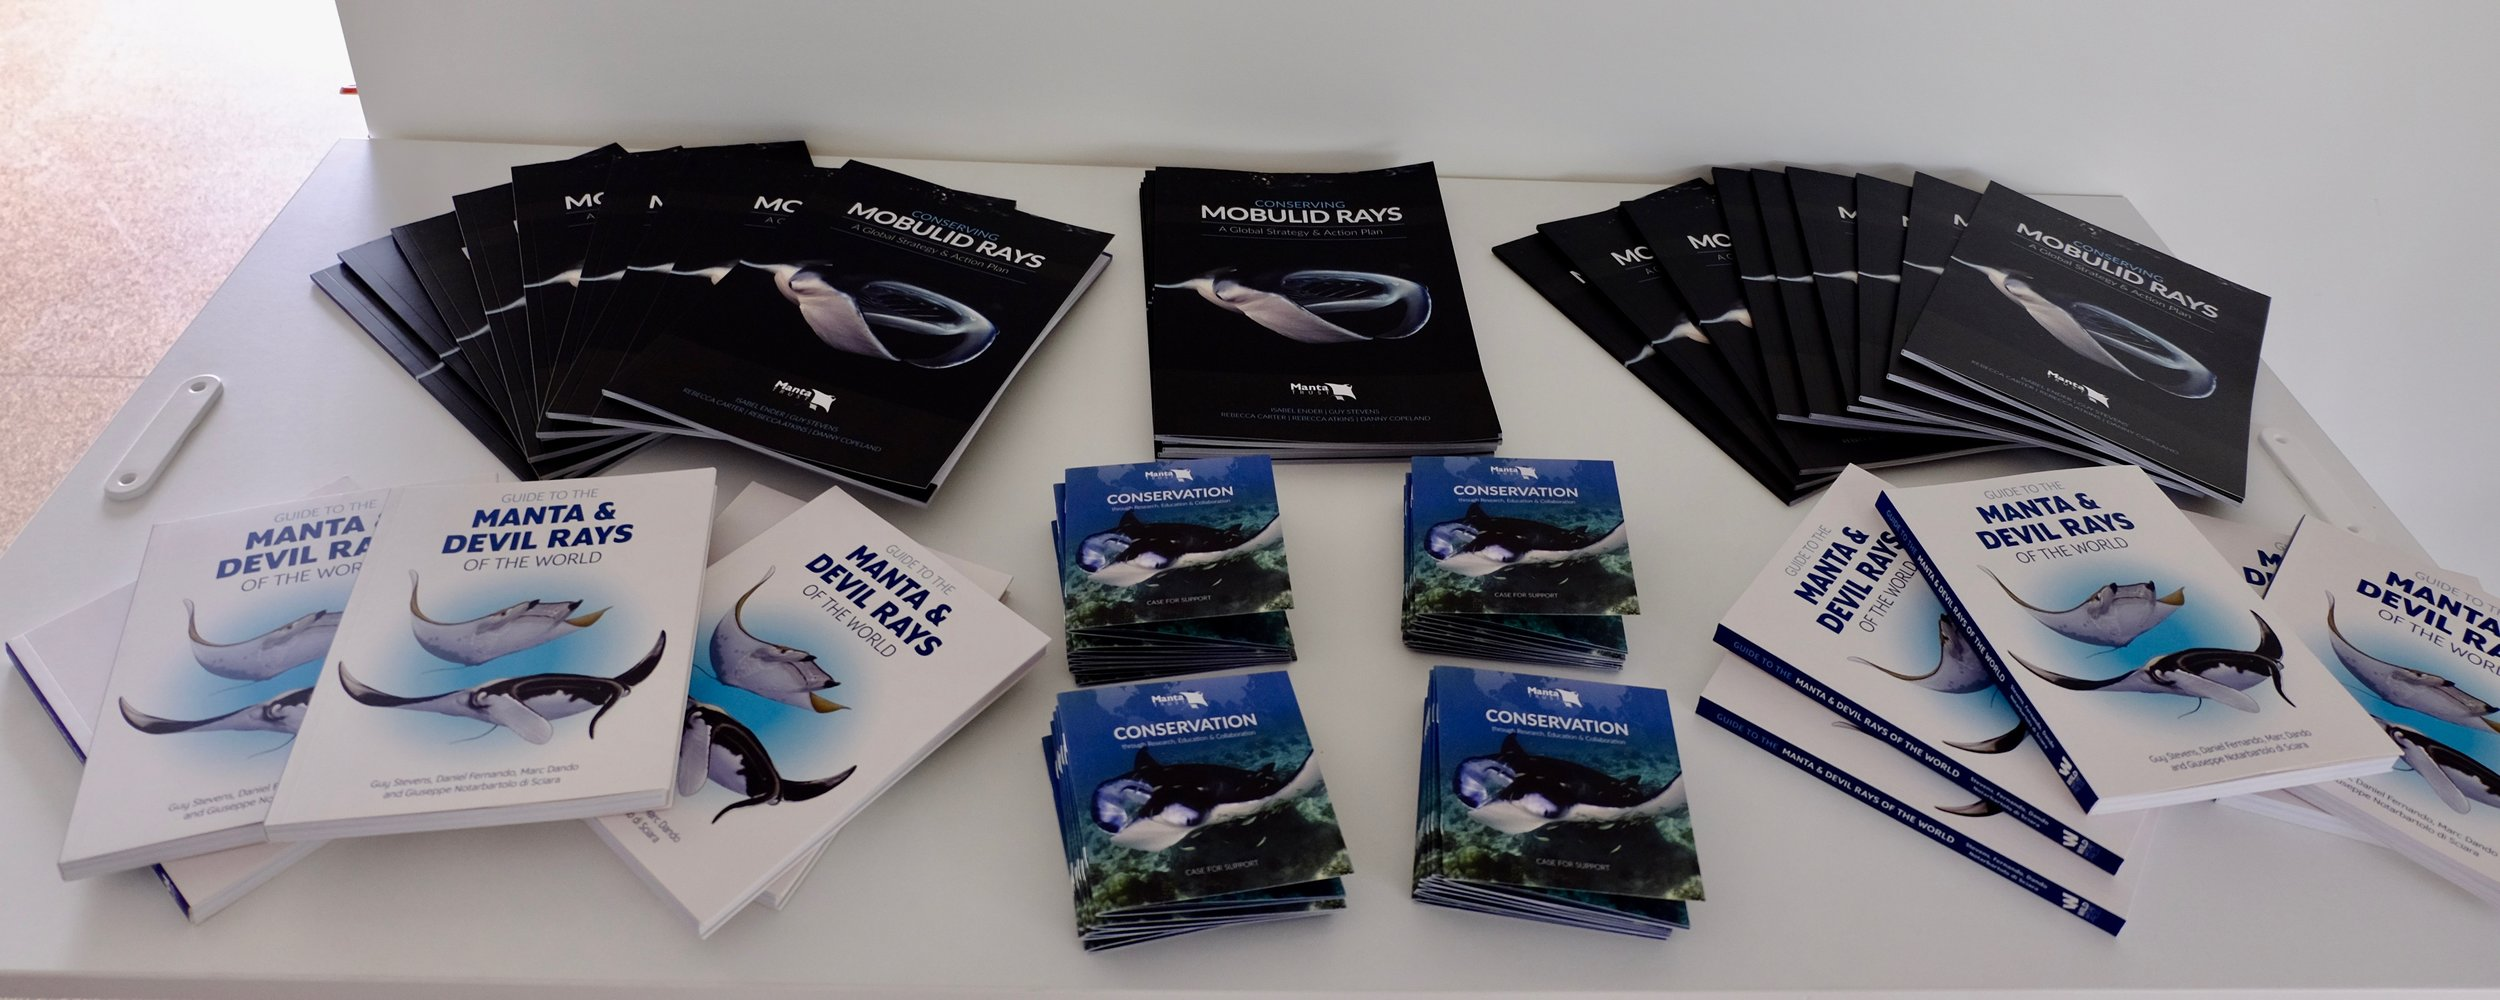 Strategy & Action Plan, Case for Support and Guide to Manta & Devil Rays.jpg